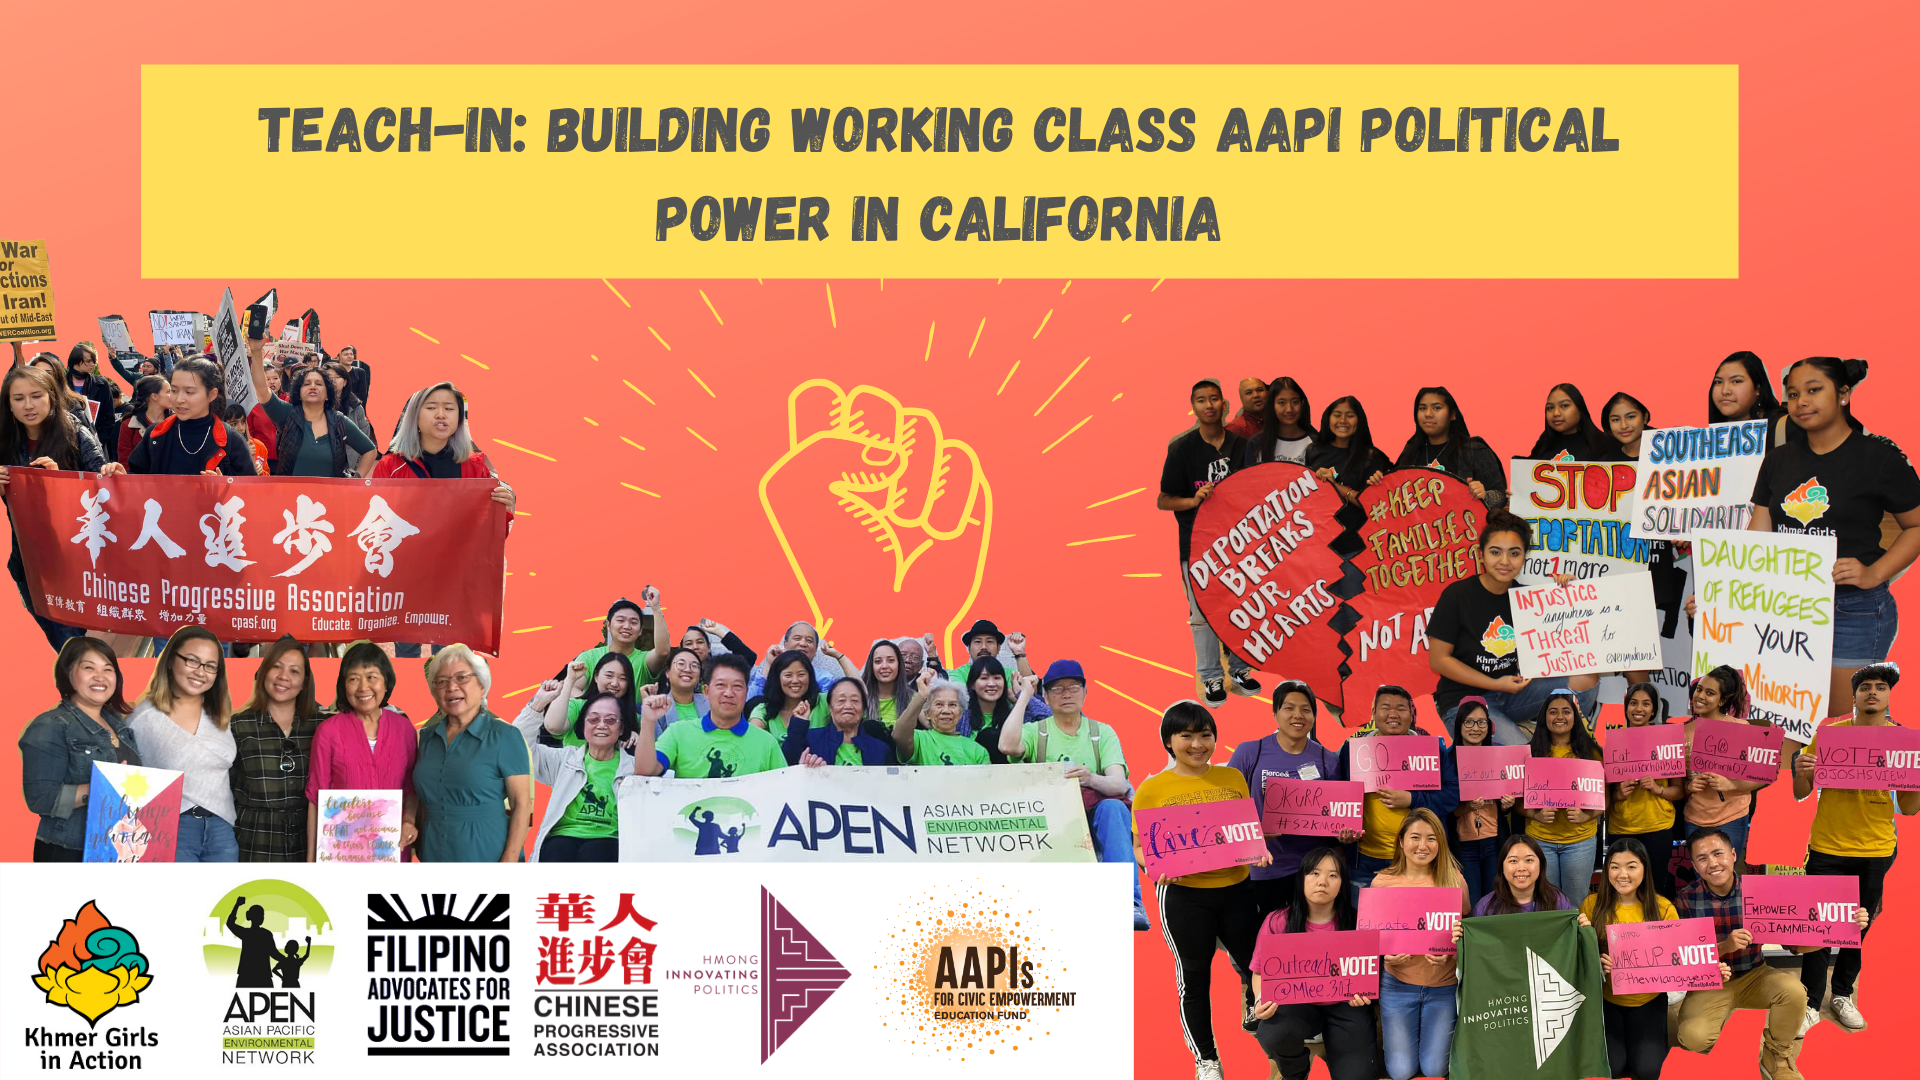 Join Our Teach In: Teach-In: Building Working Class AAPI Political Power in CA